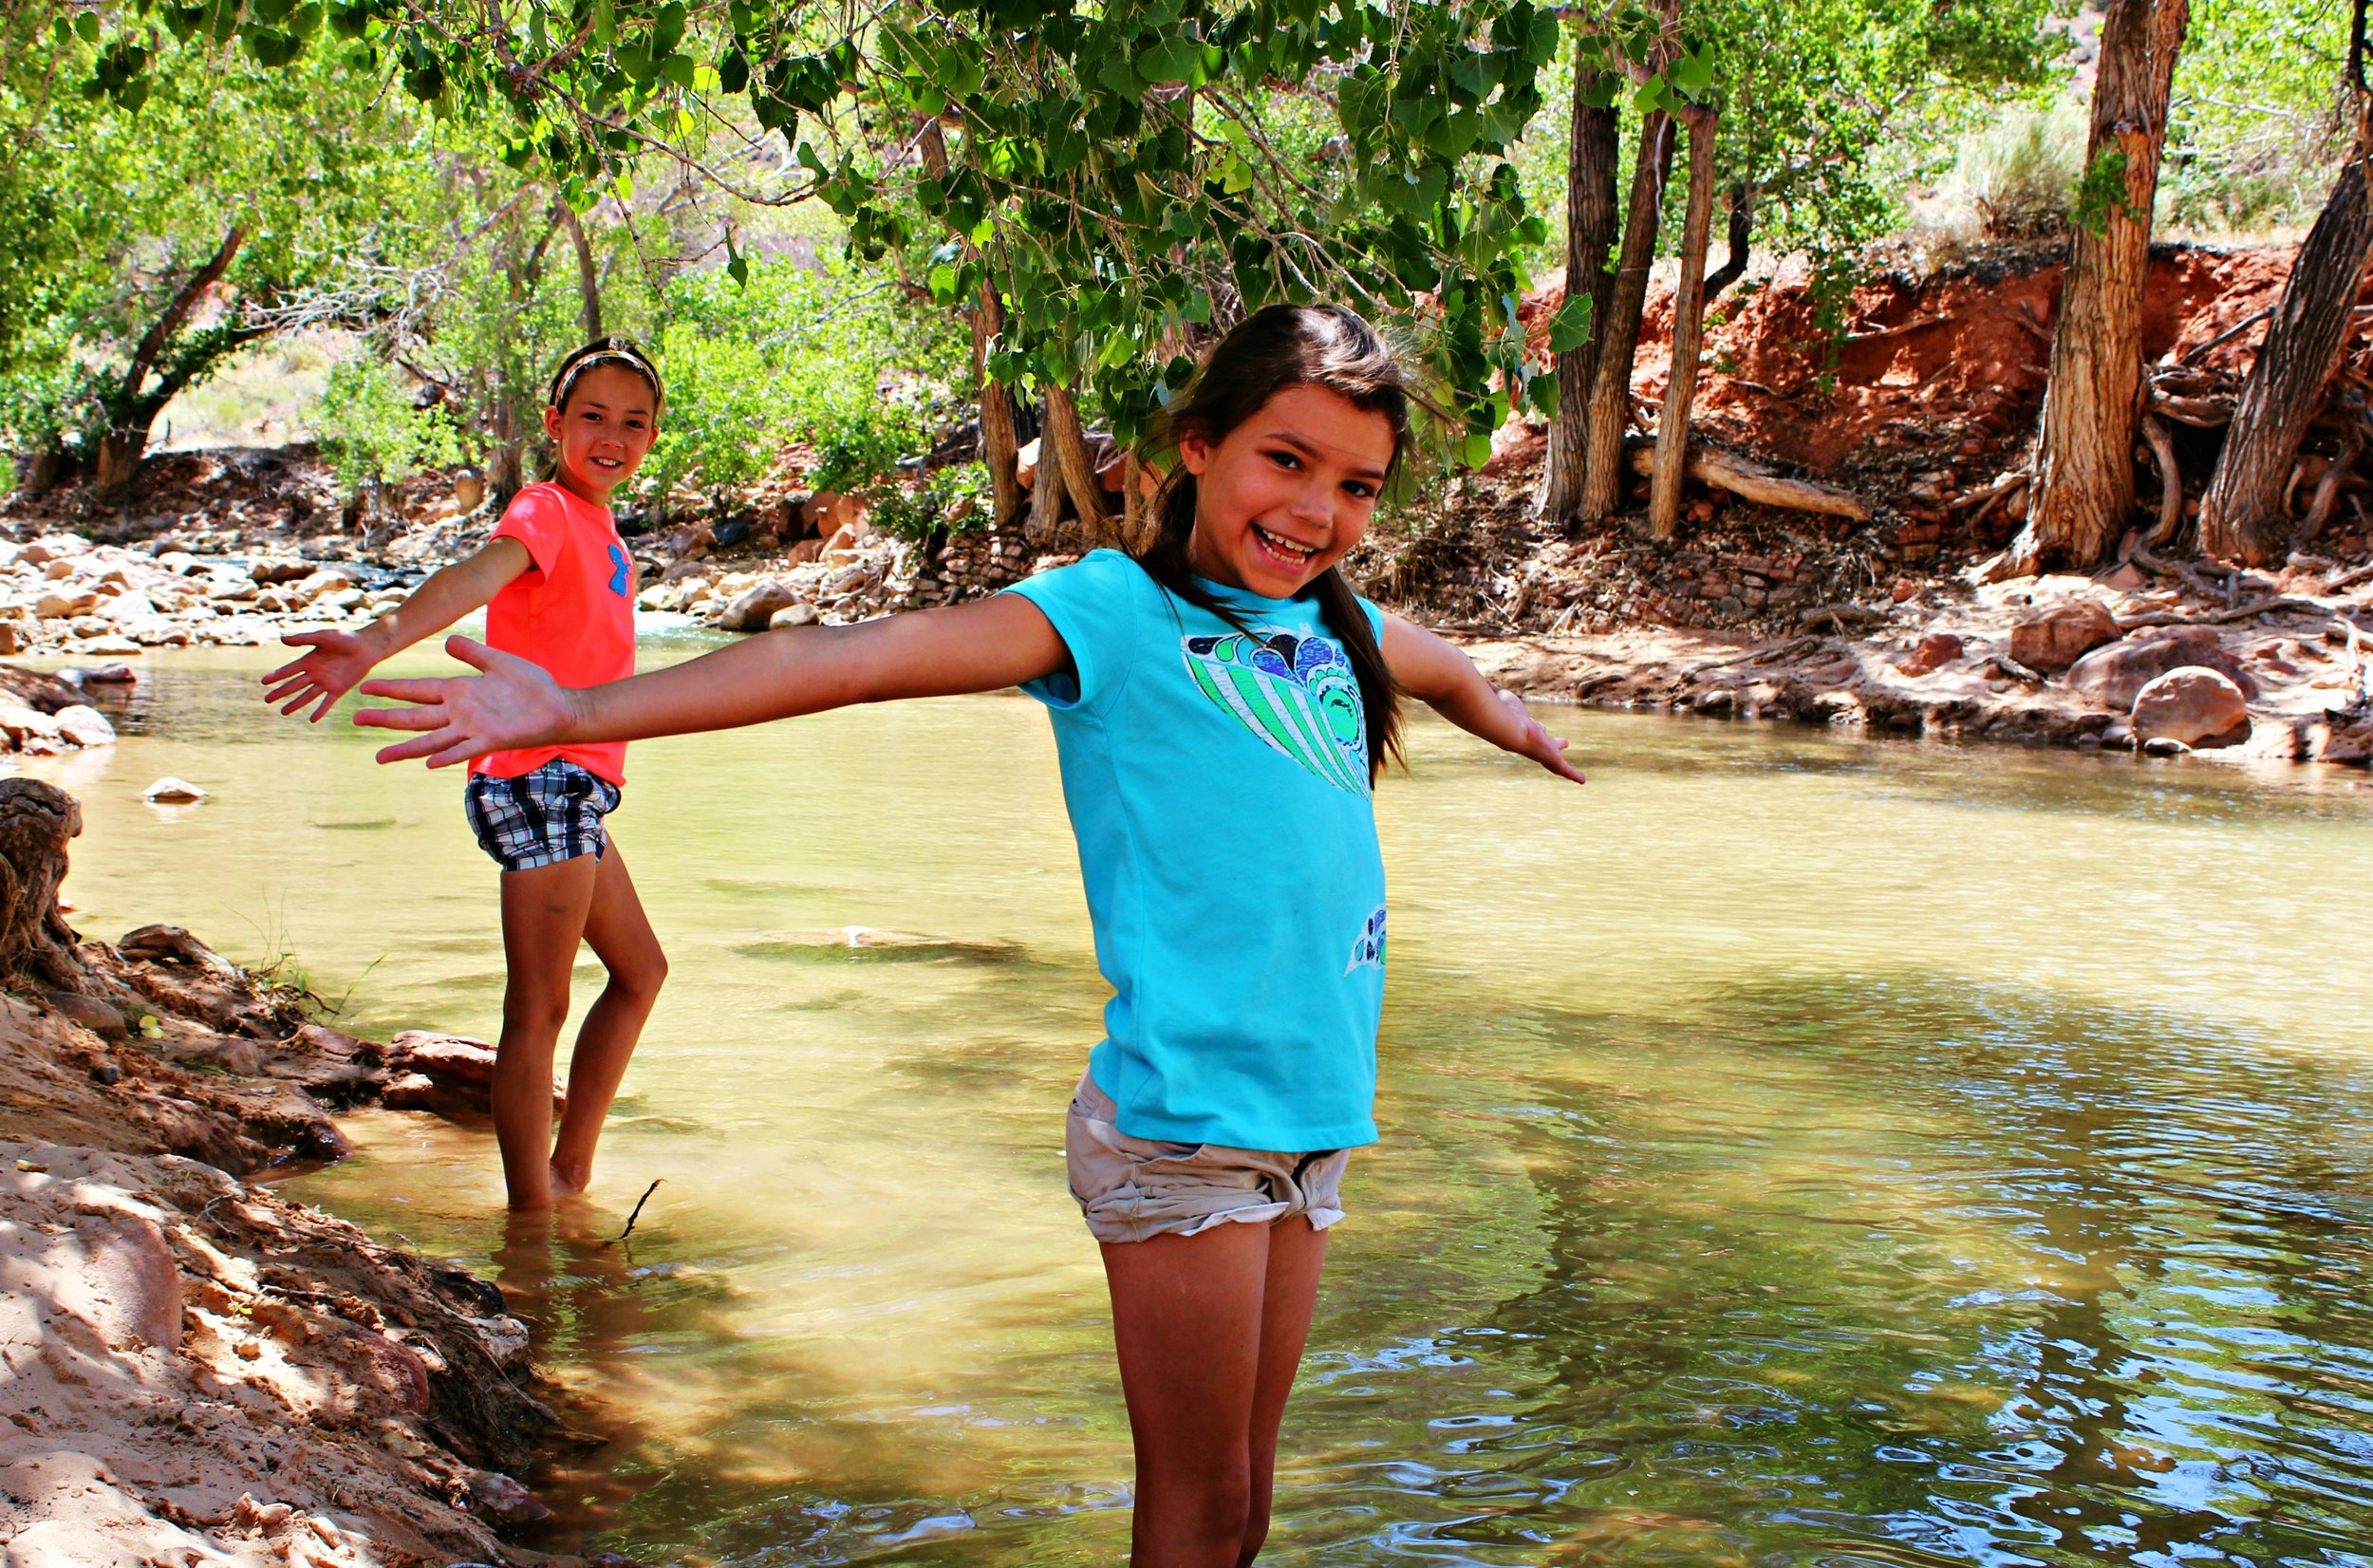 virgin-river-zion-national-park-with-kids